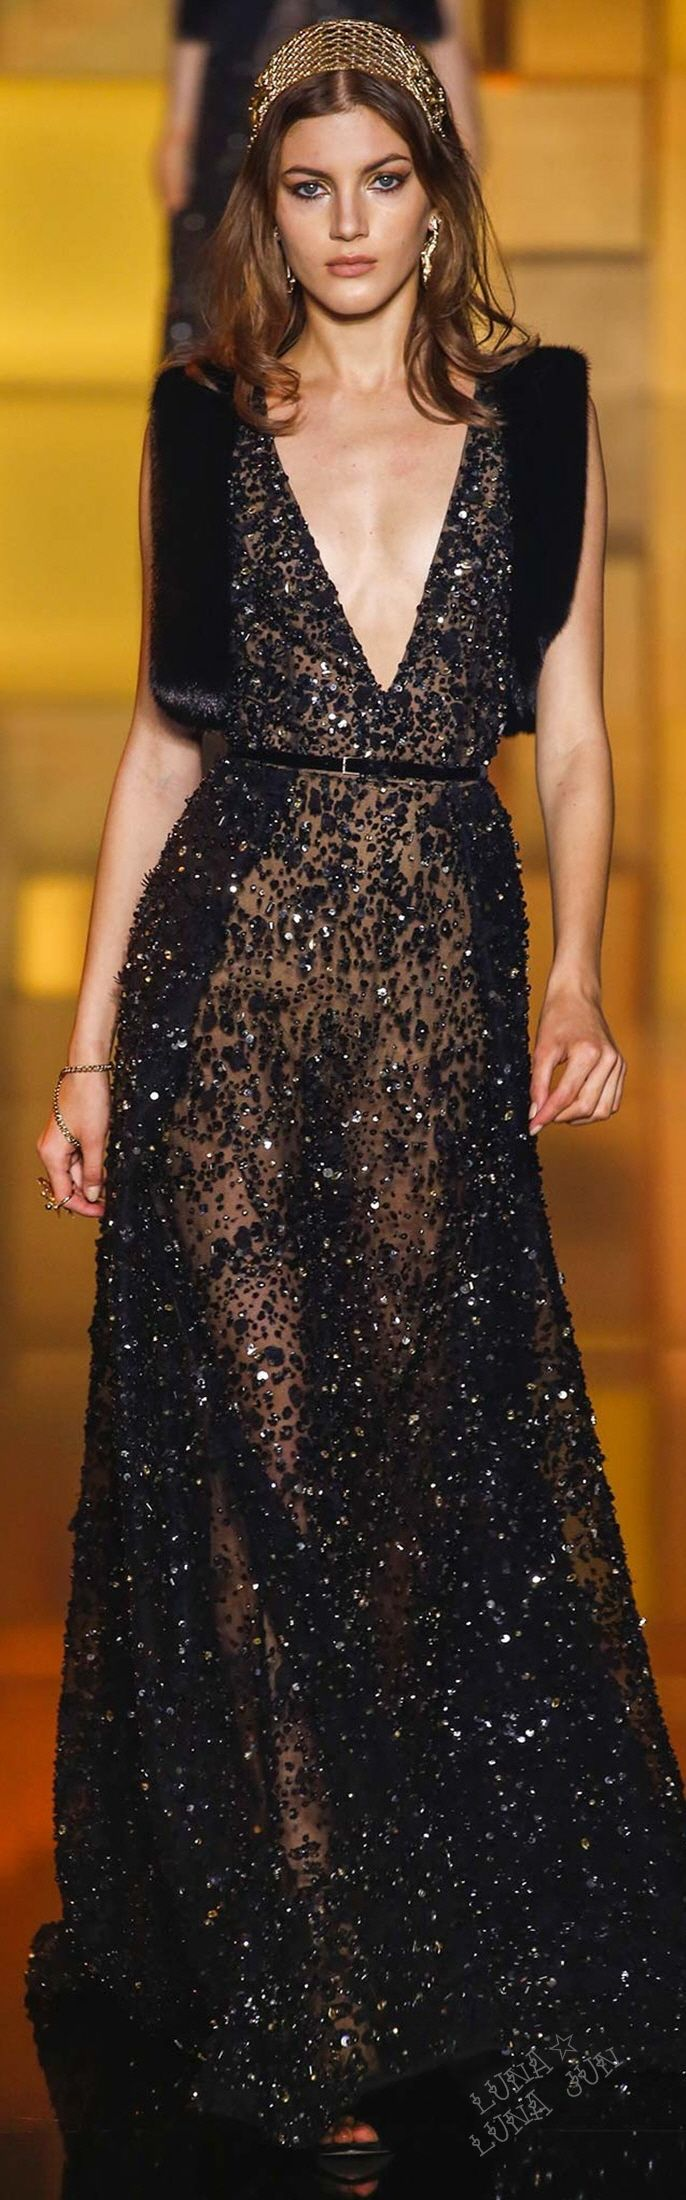 Elie Saab Fall 2015 Couture: